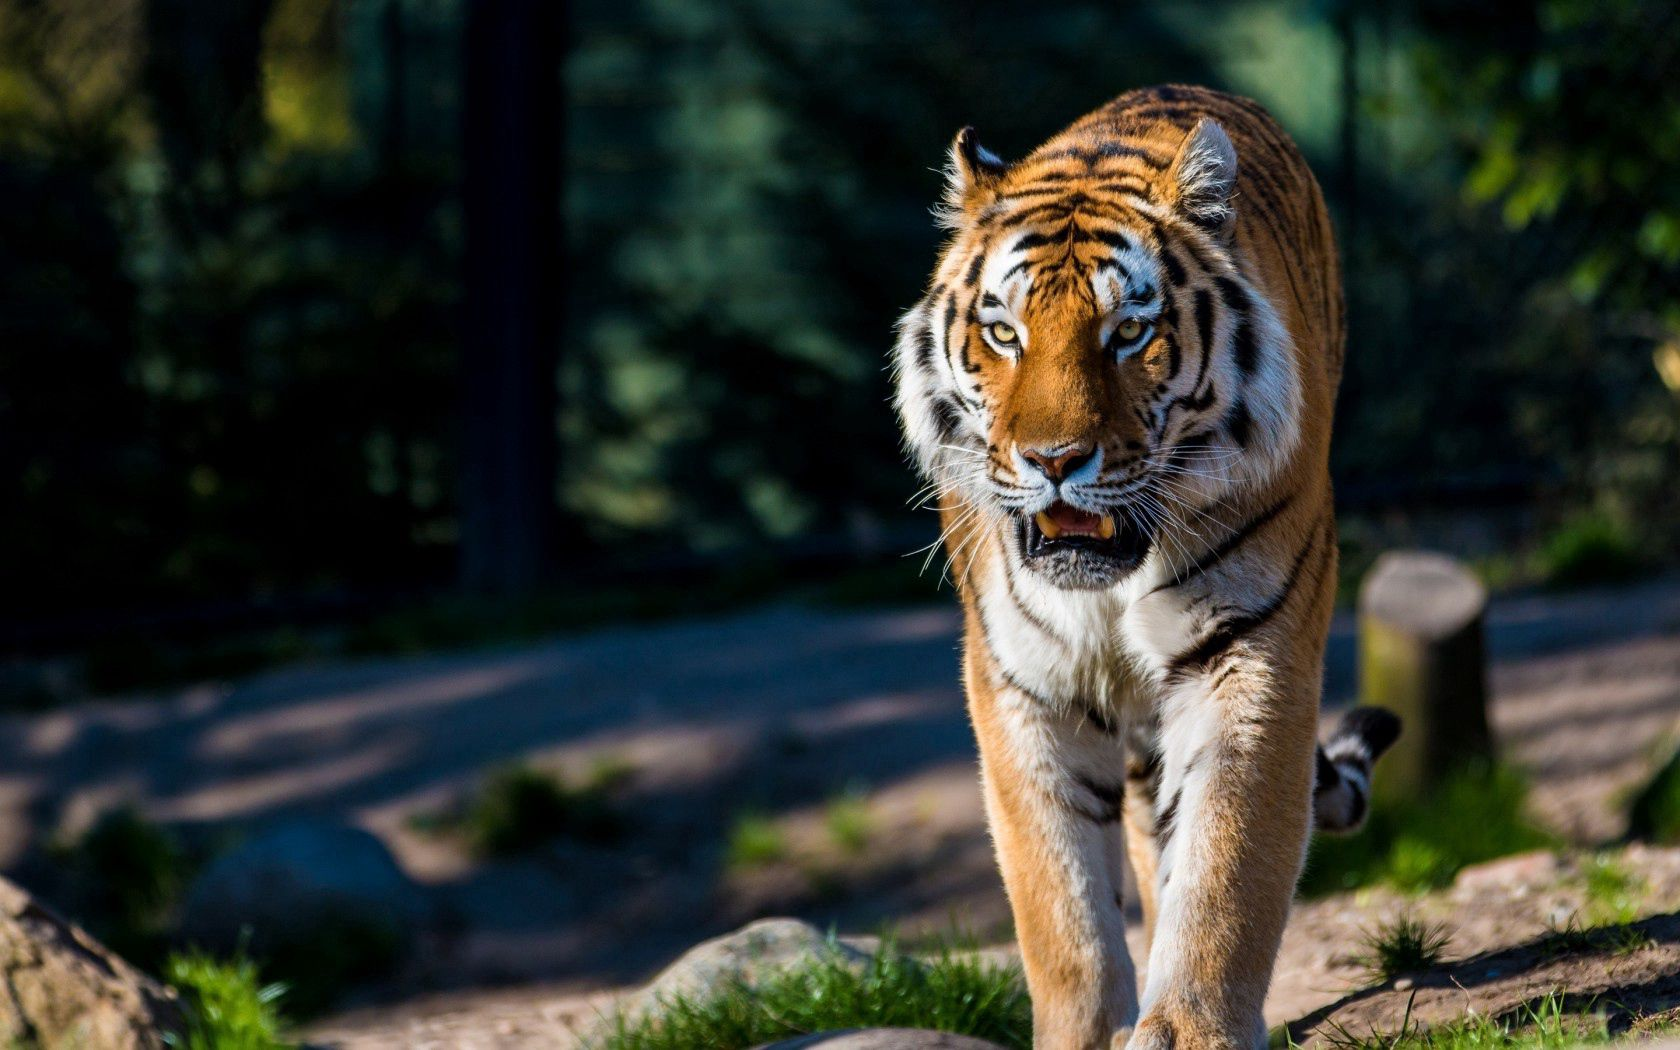 70116 download wallpaper Animals, Amur Tiger, Wild Cat, Wildcat, Predator, Stroll screensavers and pictures for free